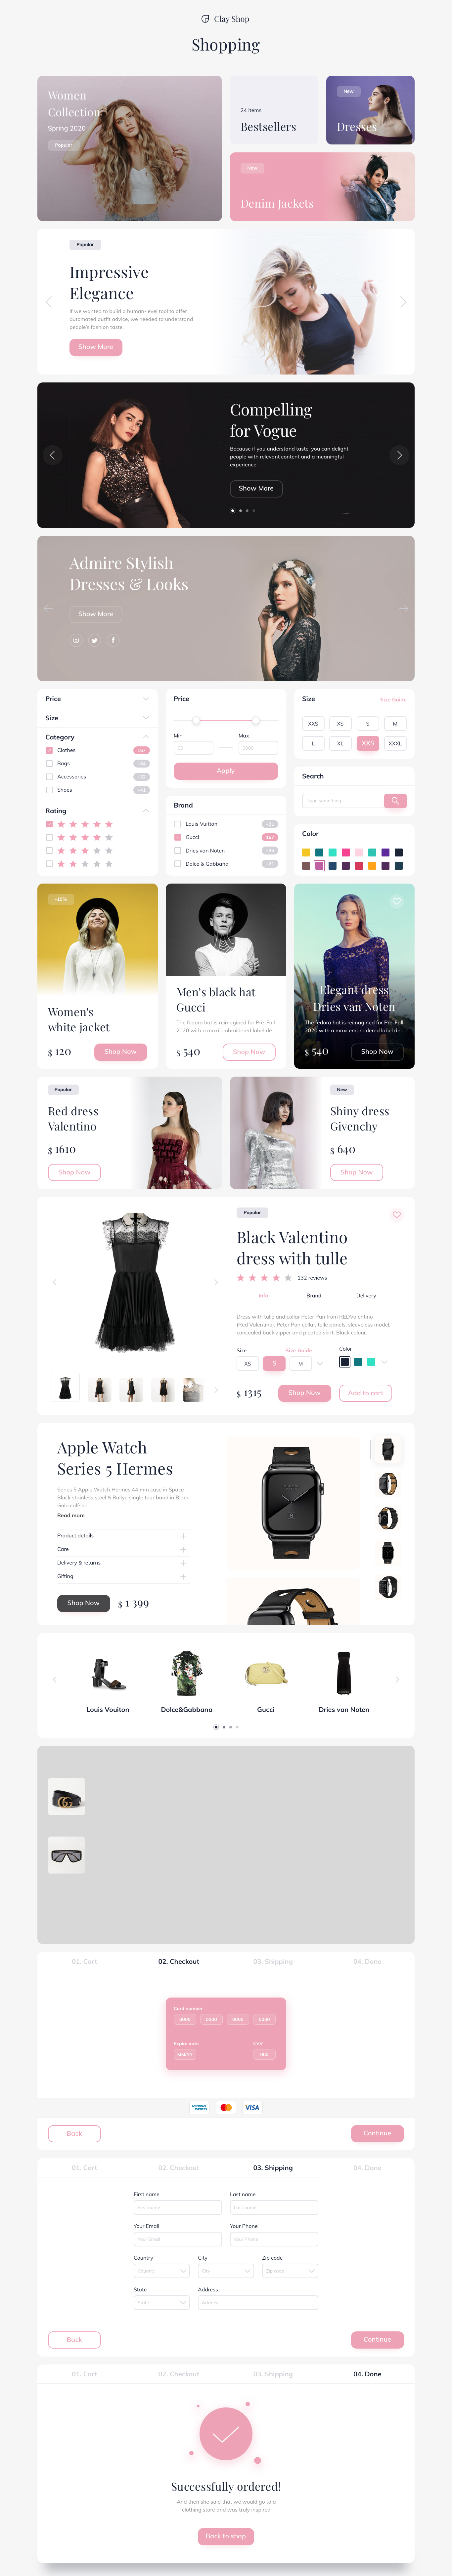 Clay Shop E-commerce UI Kit For Sketch - Ultimate e-commerce UI Kit with 5 pages and 60+ Components. Easy to resize and customize. All components carefully named sorted. With free Google fonts.